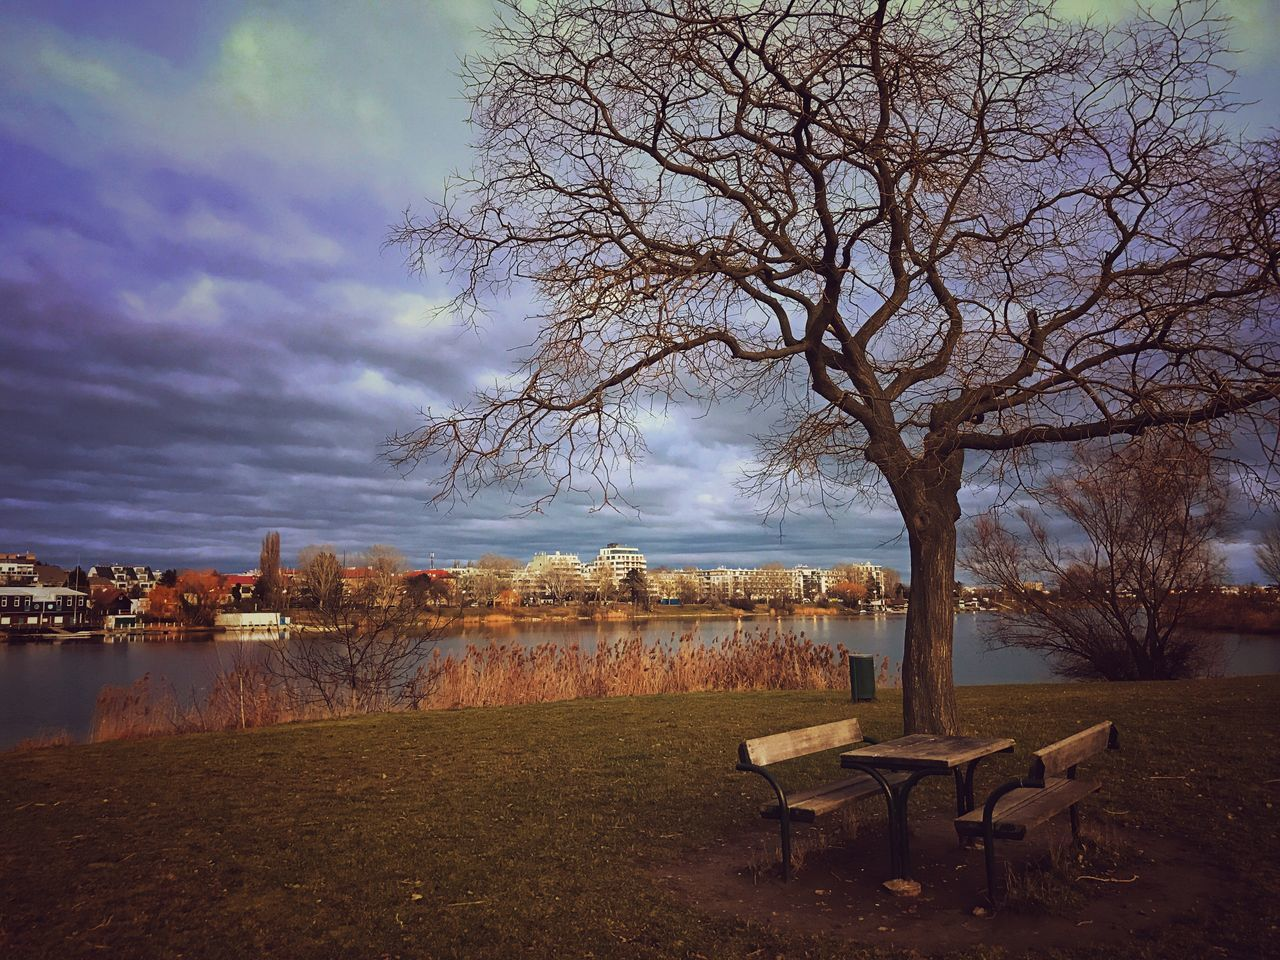 EMPTY BENCHES BY BARE TREE AGAINST SKY